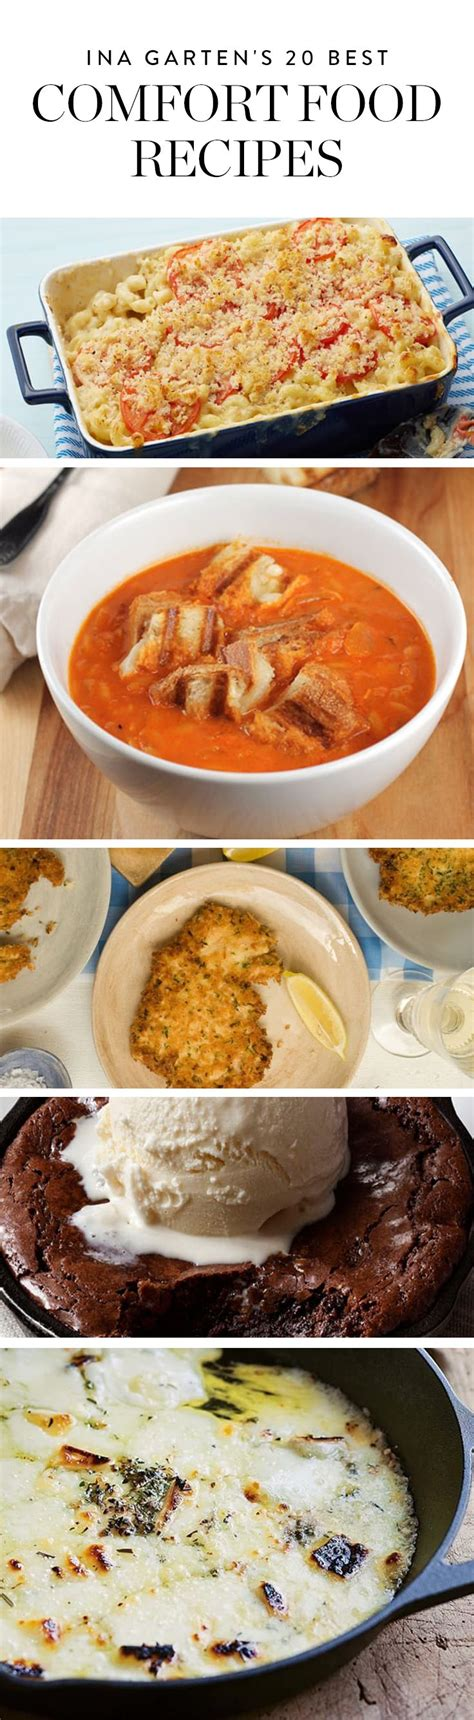 best winter comfort food recipes best 25 idol ideas on pinterest